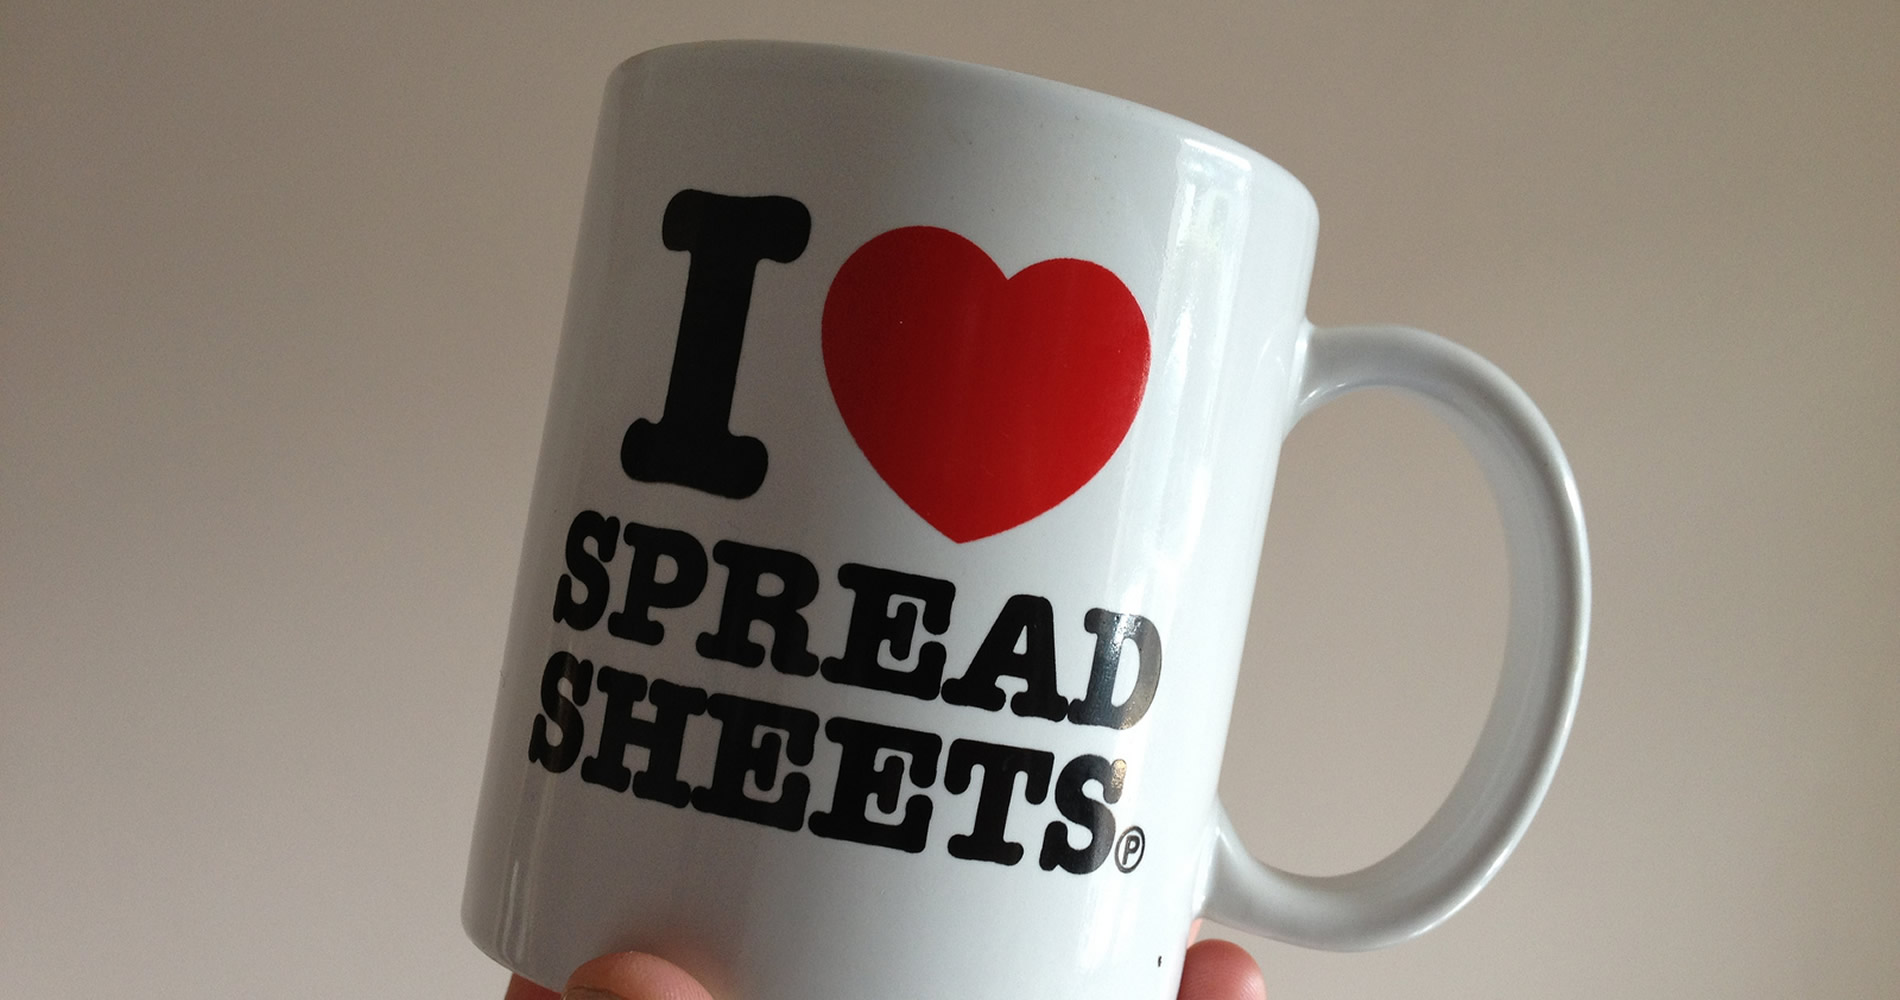 Spreadsheets are destroying your business